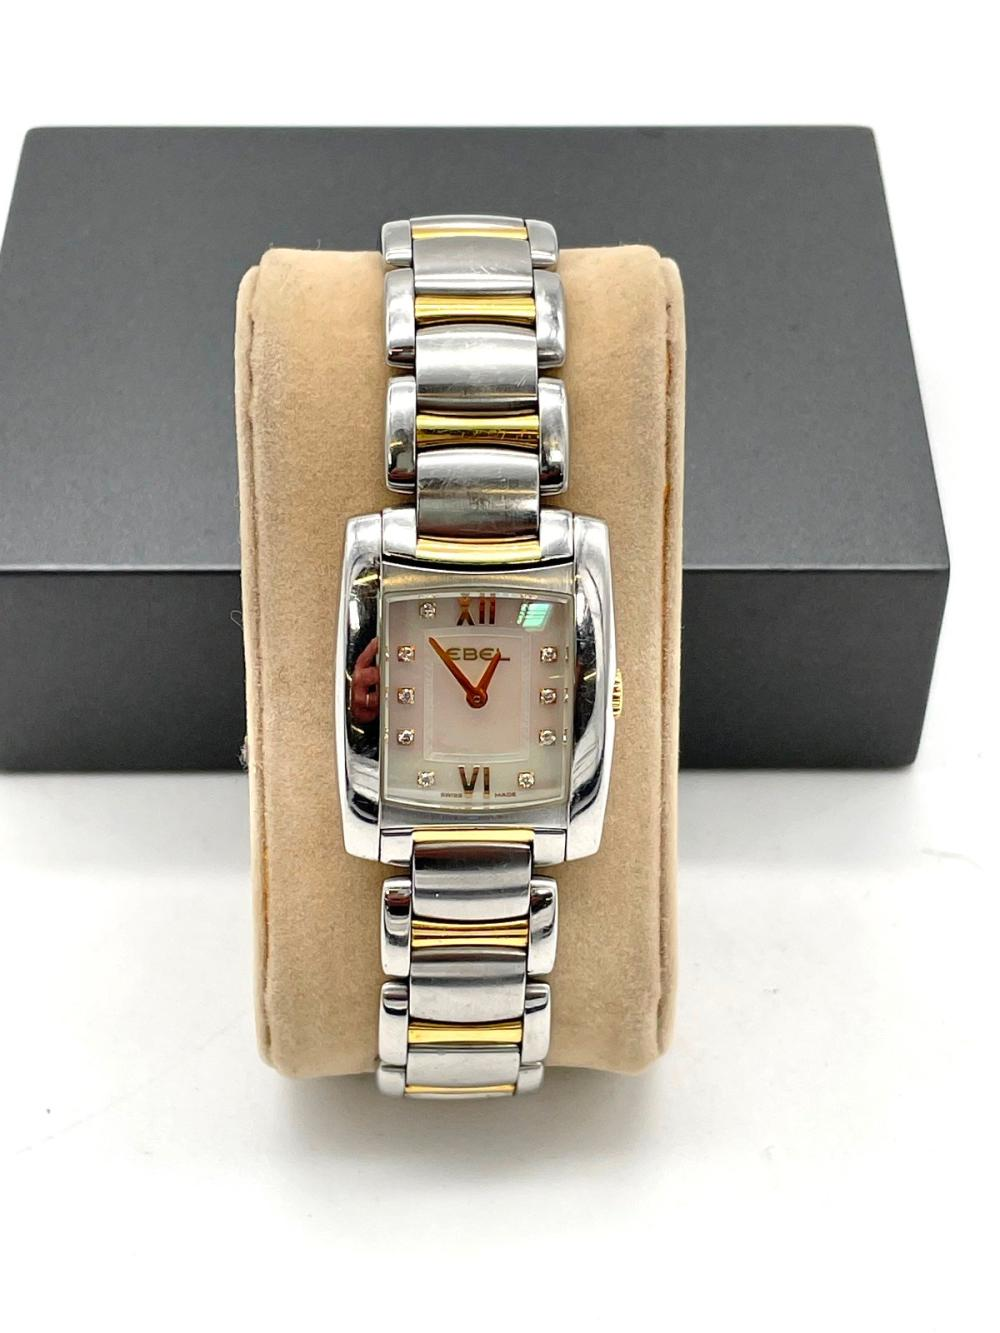 Ebel Brasilia Stainless Steel Ladies Wrist Watch With Yellow Gold Accent